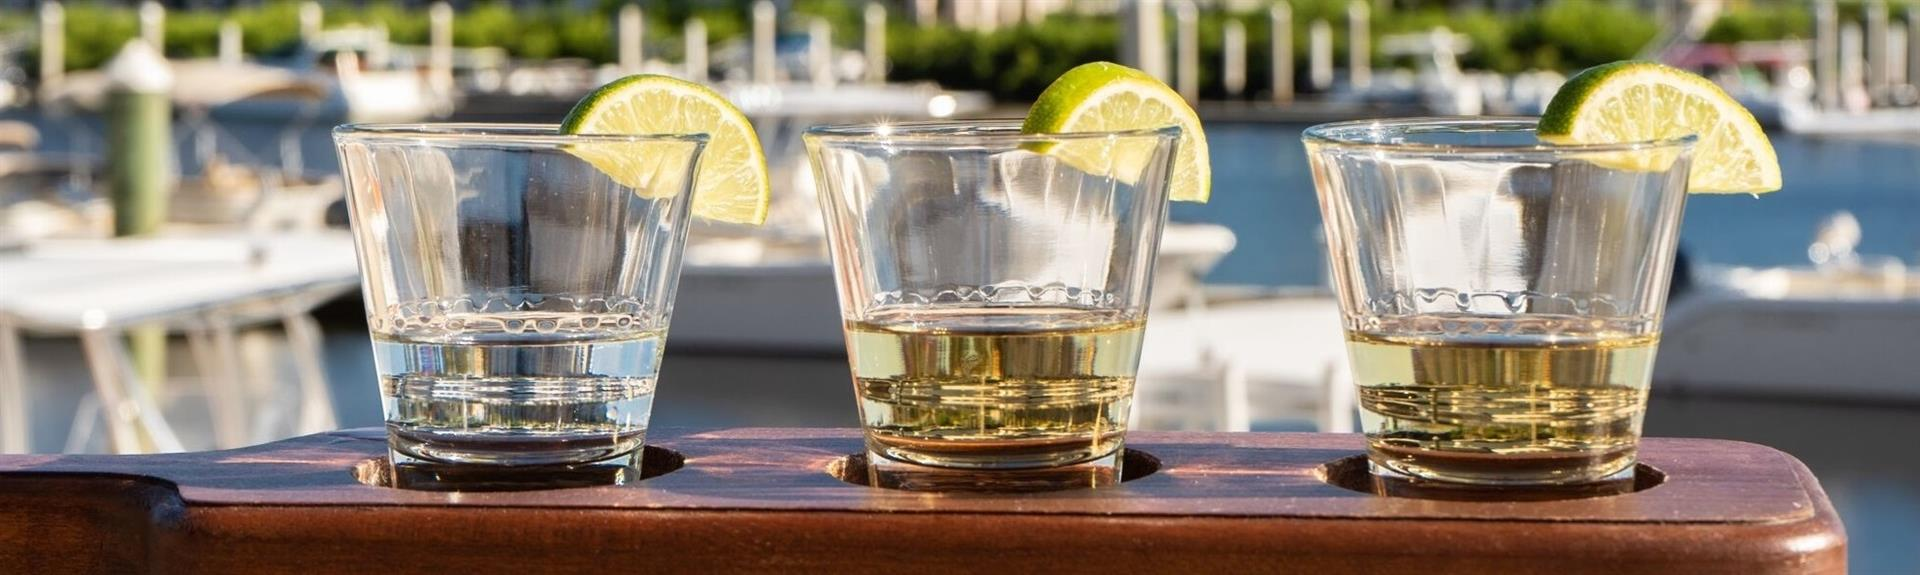 flight of tequila shots with limes